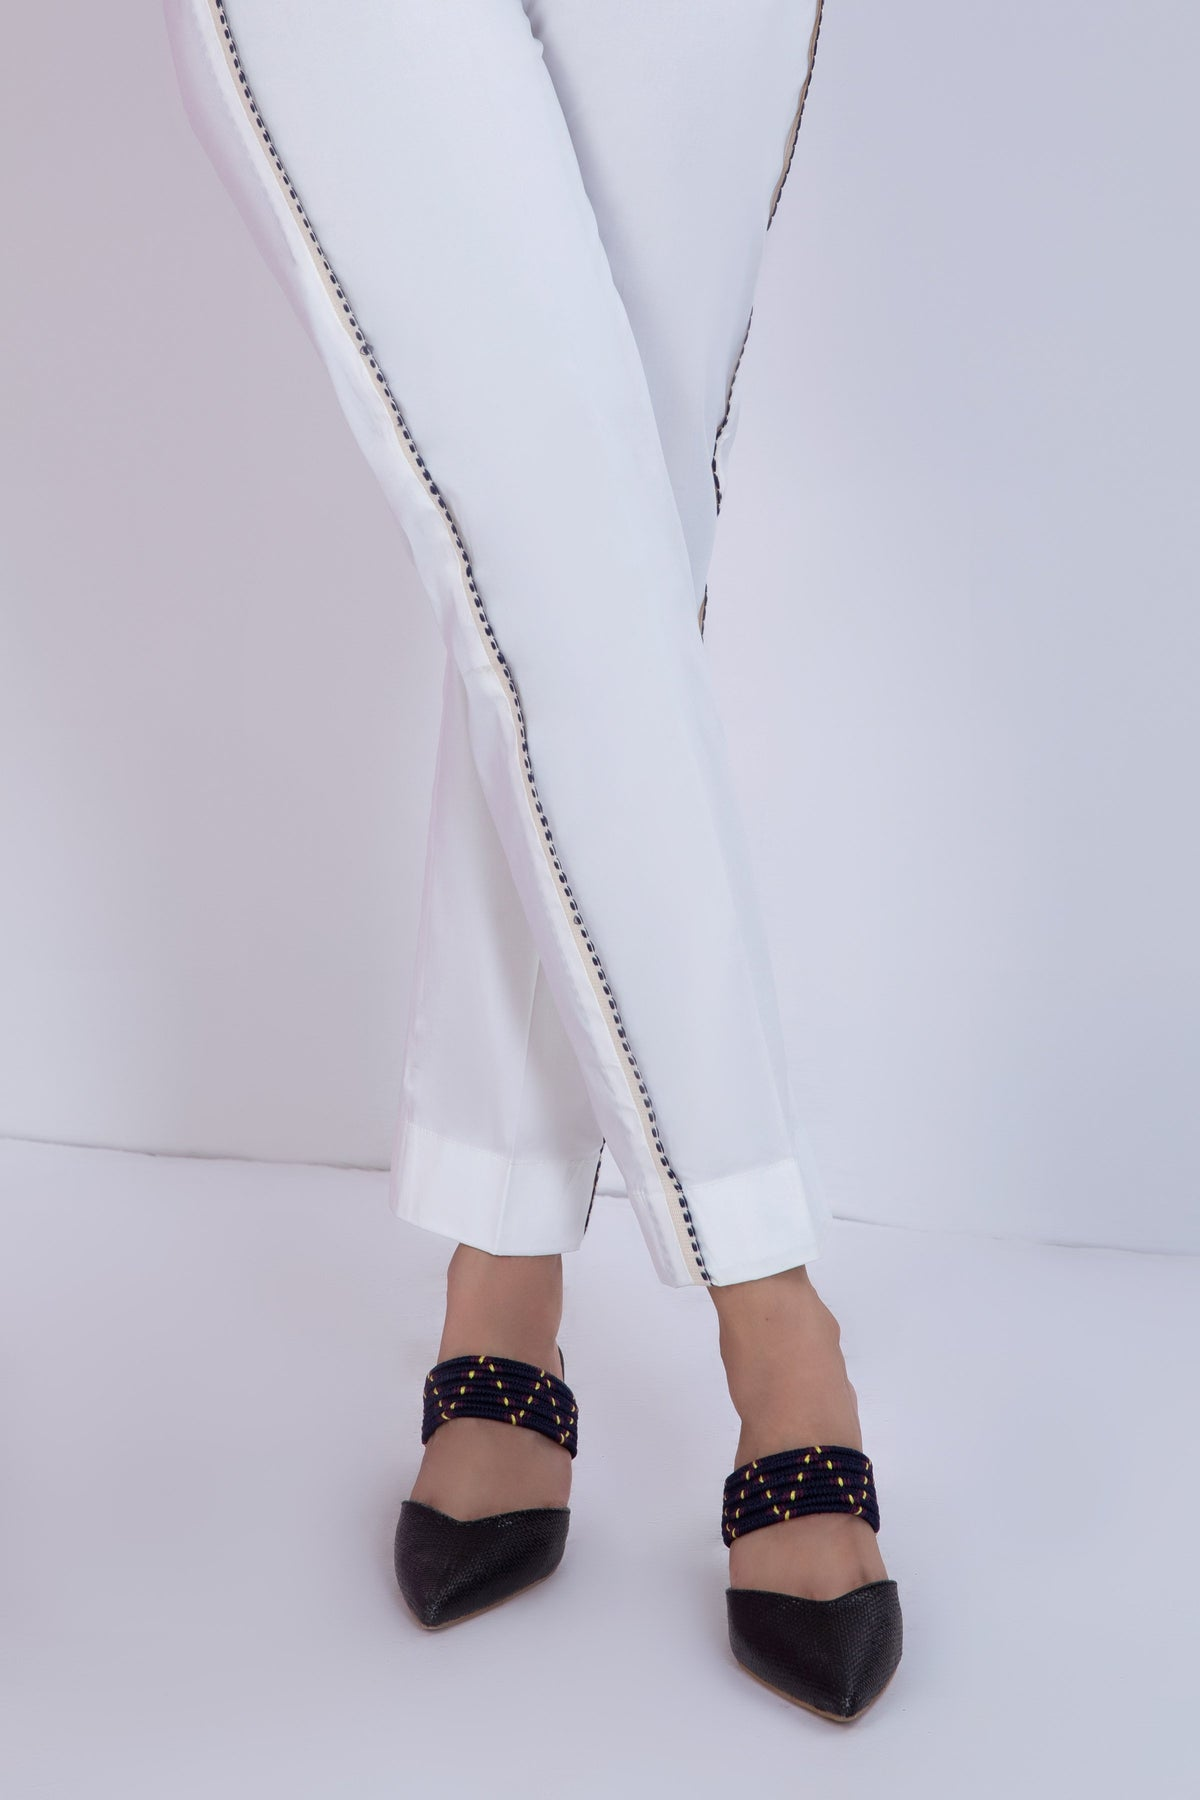 Off White Trouser - Stretchable Lycra